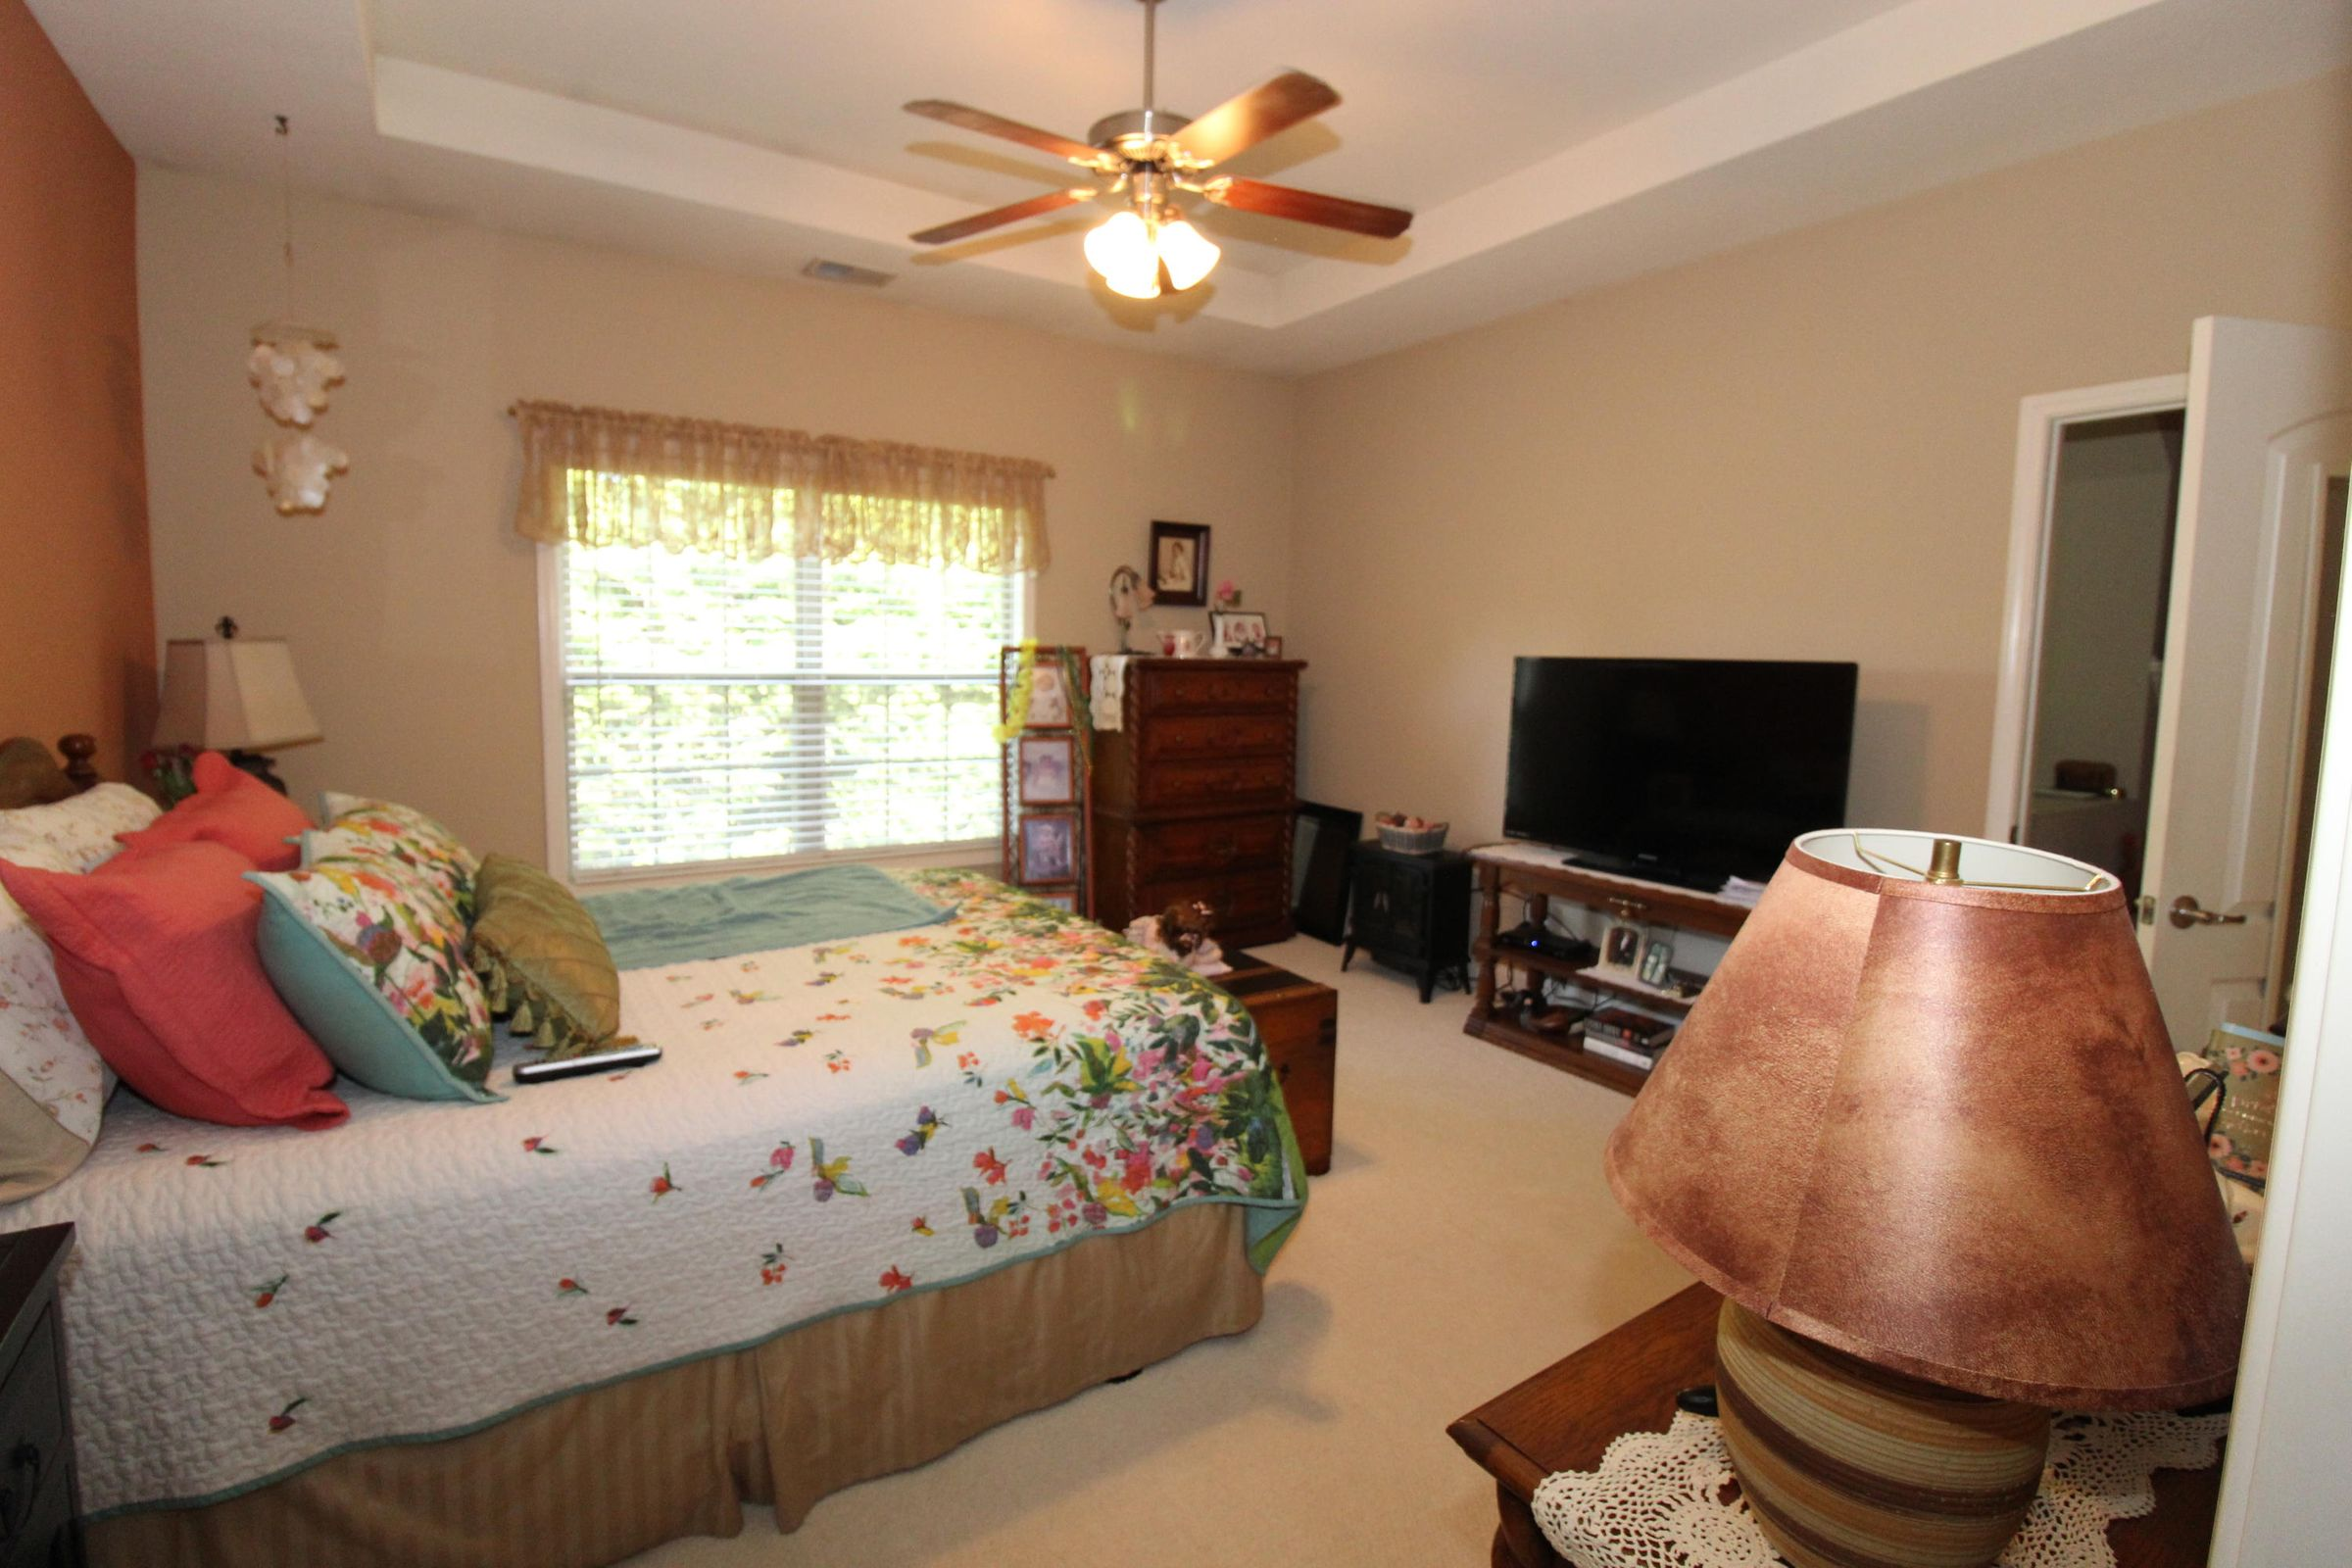 Another view master bedroom